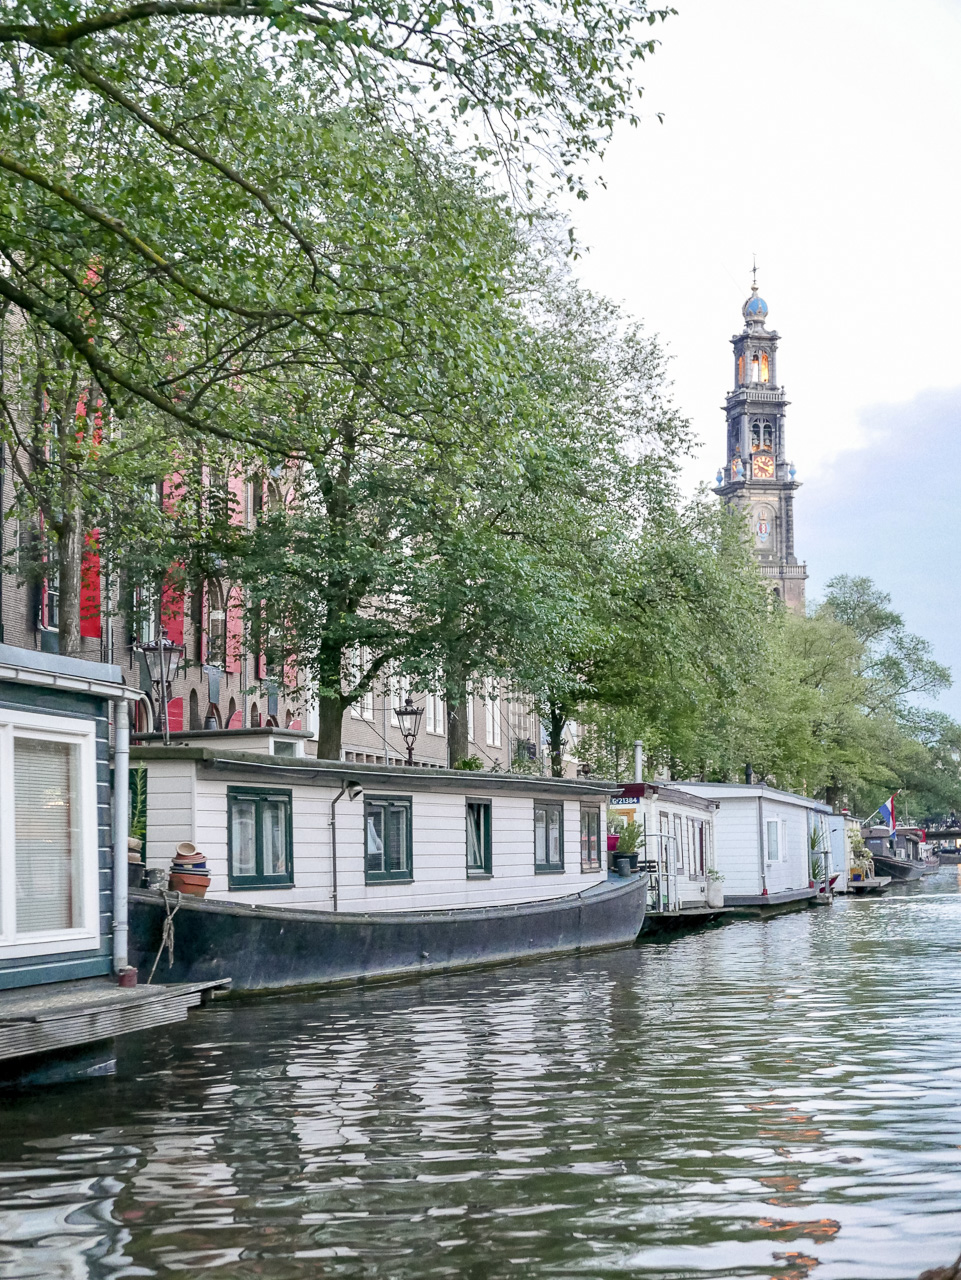 Cara Sharratt Travel - Amsterdam, Netherlands